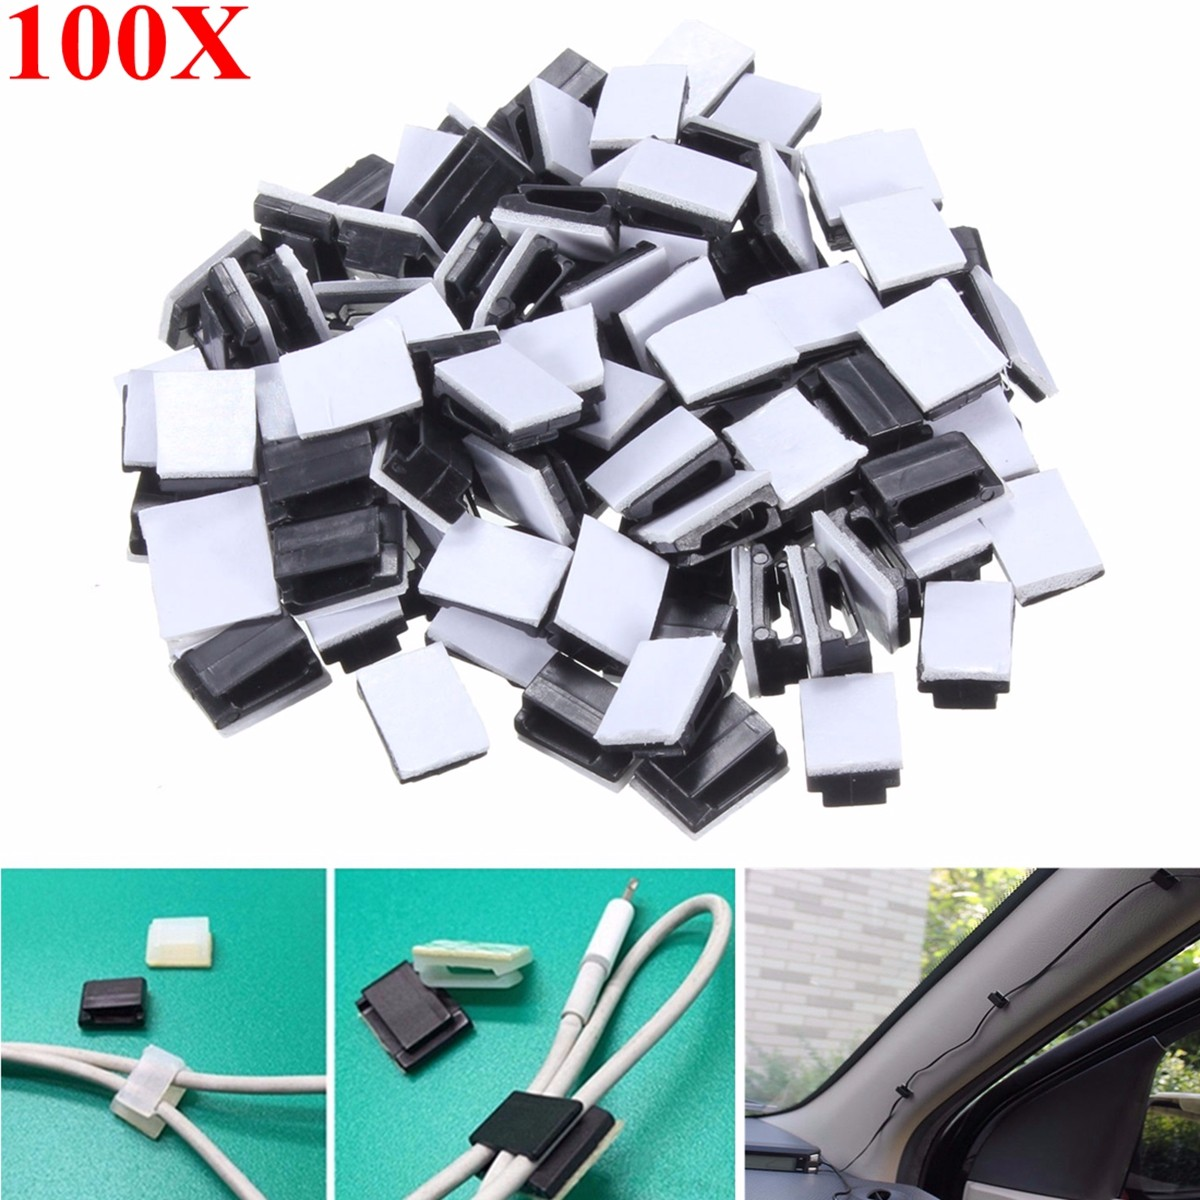 100pcs Plastic Wire Tie Rectangle Cable Mount Clip Clamp Self-adhesive Black mk